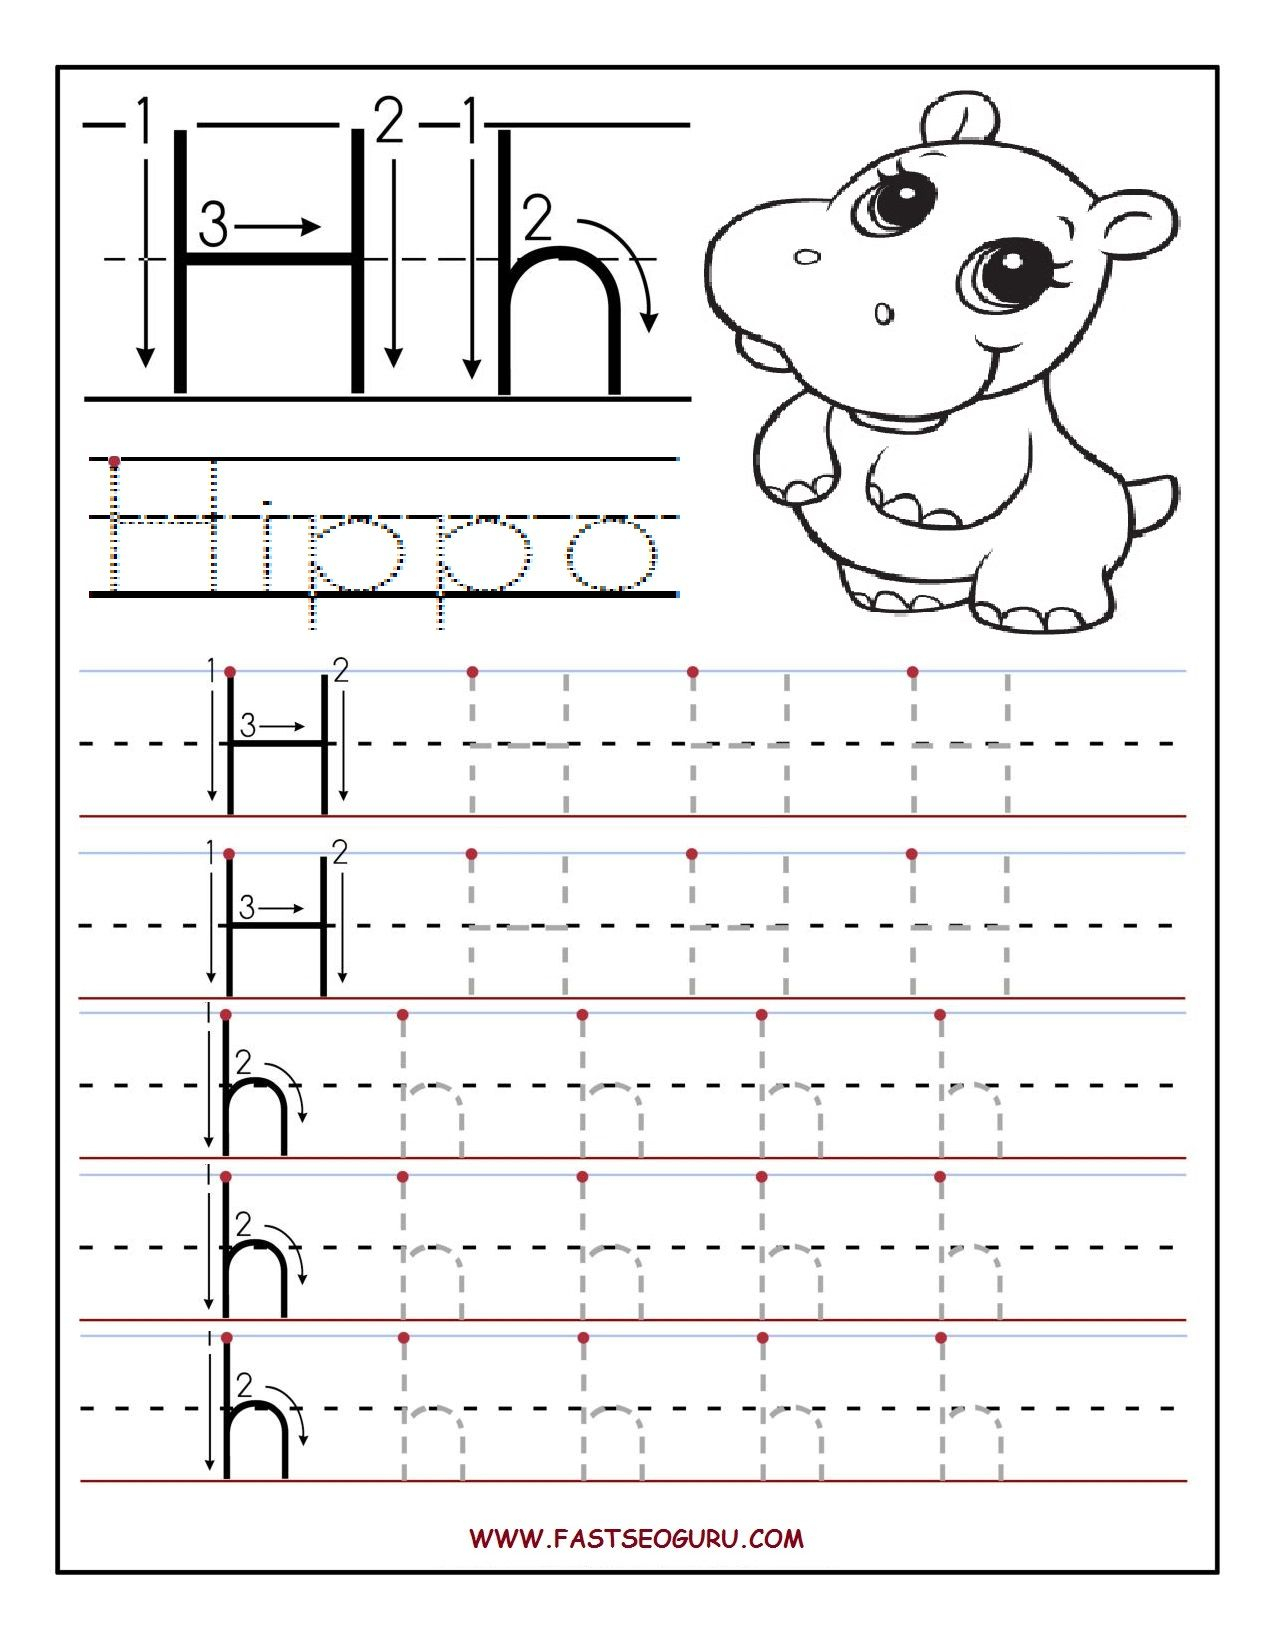 Printable Letter H Tracing Worksheets For Preschool throughout Letter H Worksheets Printable